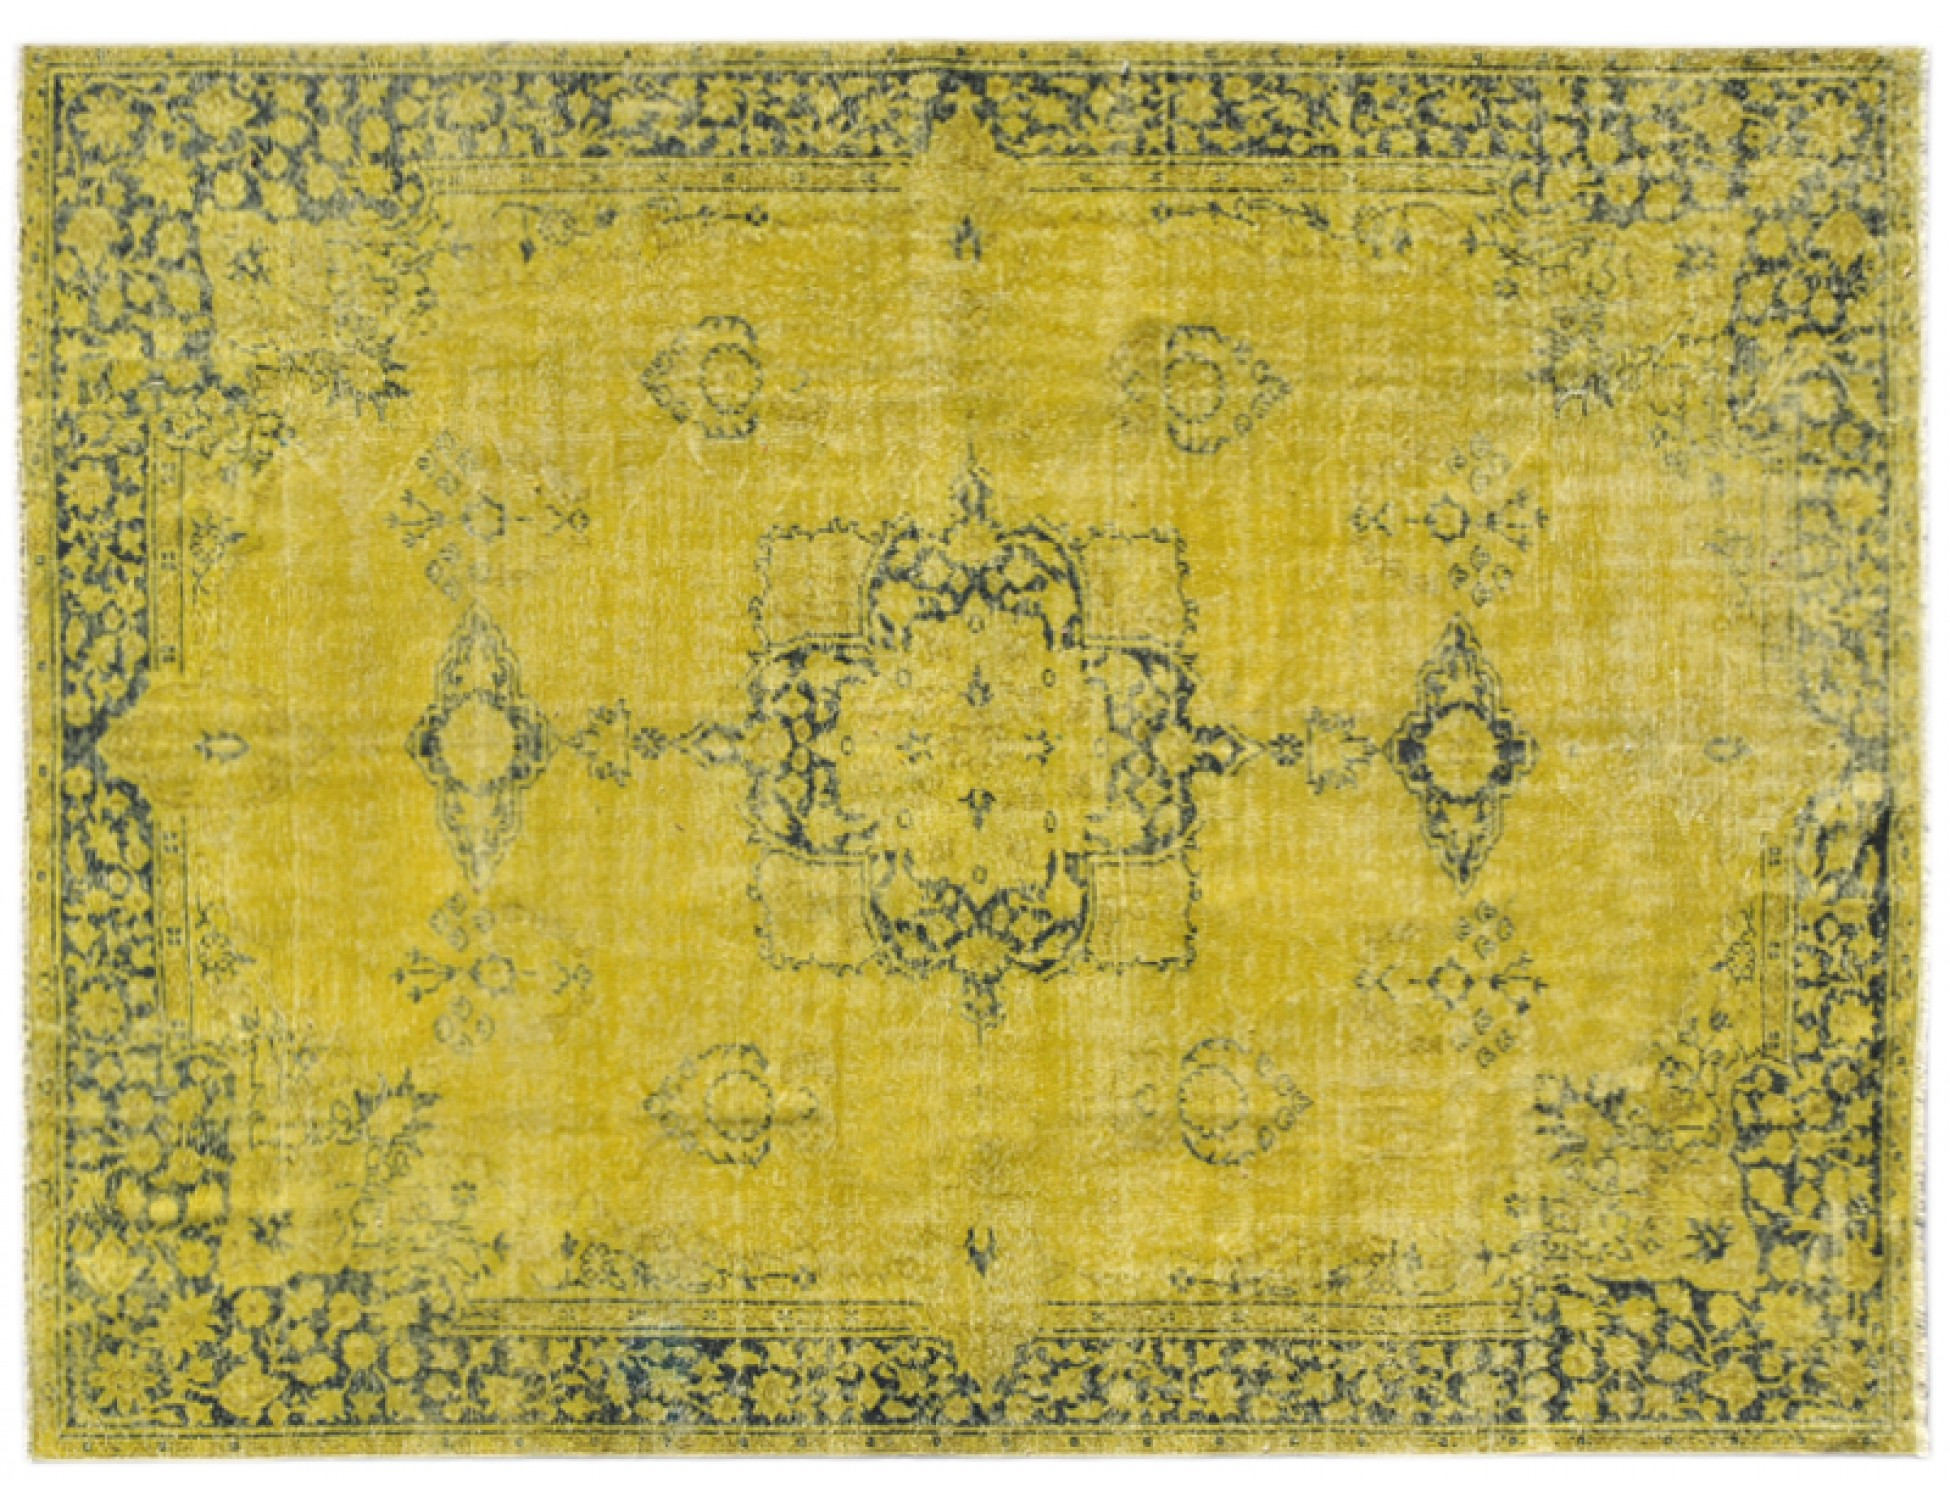 Vintage Carpet  yellow <br/>302 x 225 cm